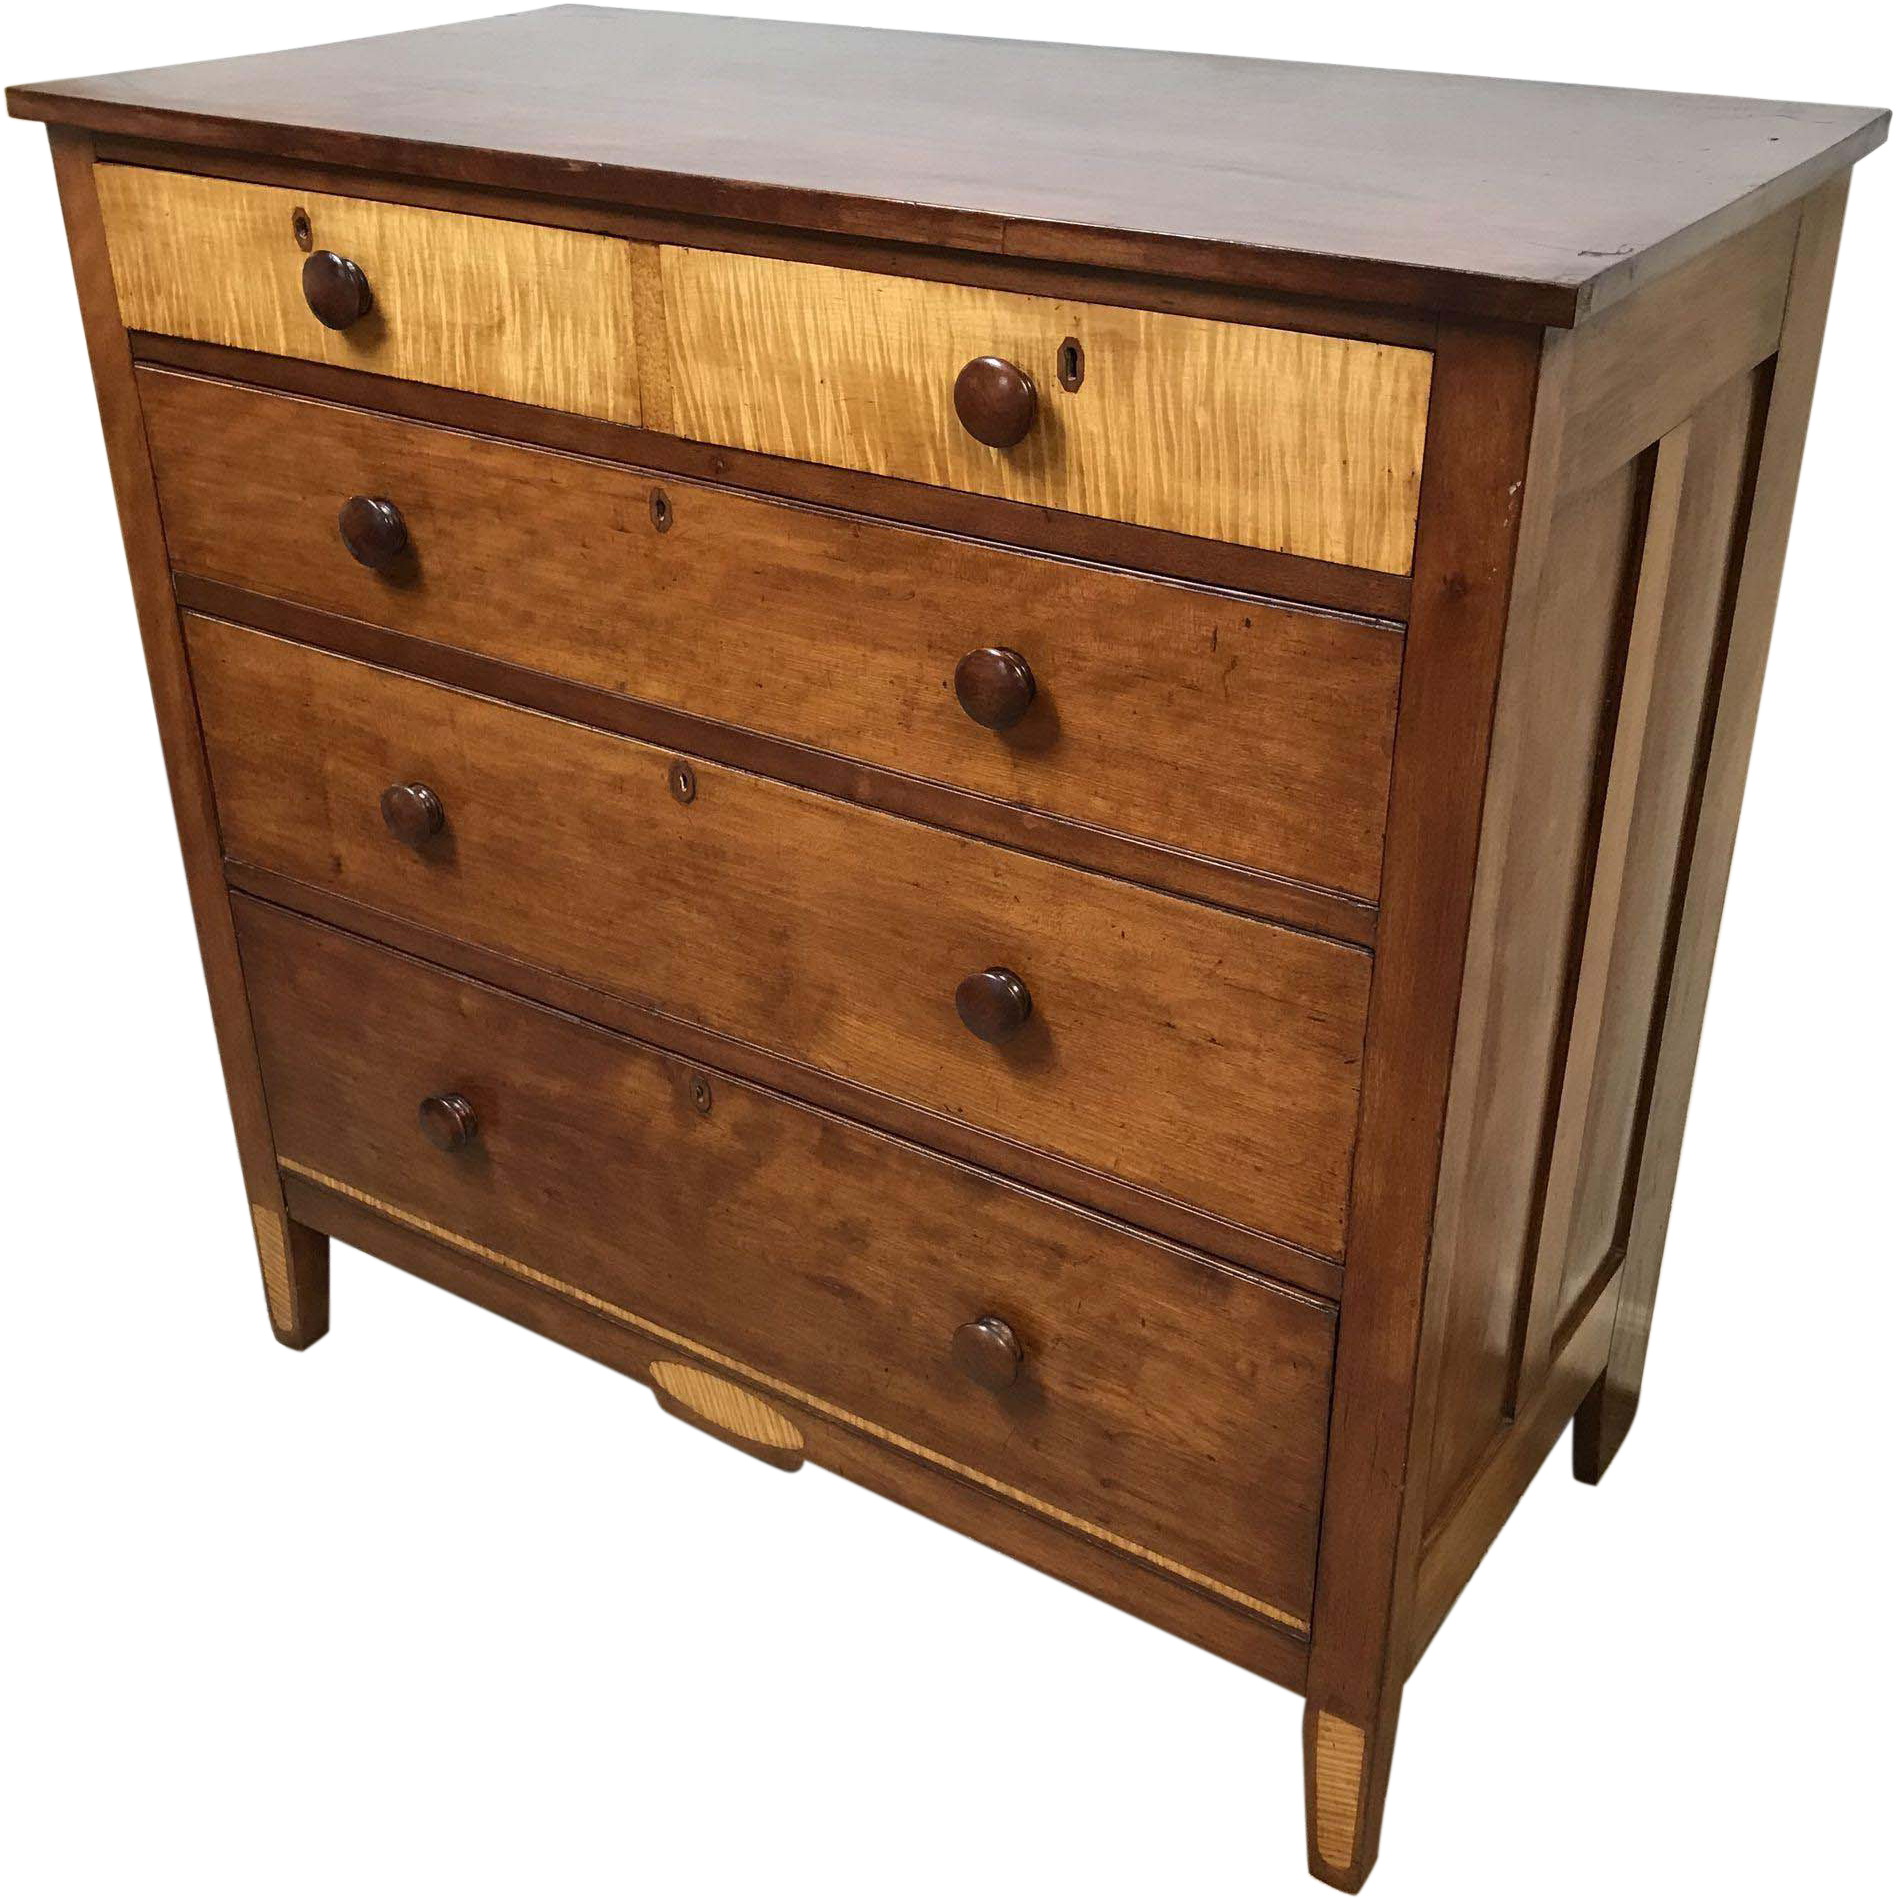 Circa 1800 New England Cherry & Tiger Maple 2 over 3 Chest of Drawers